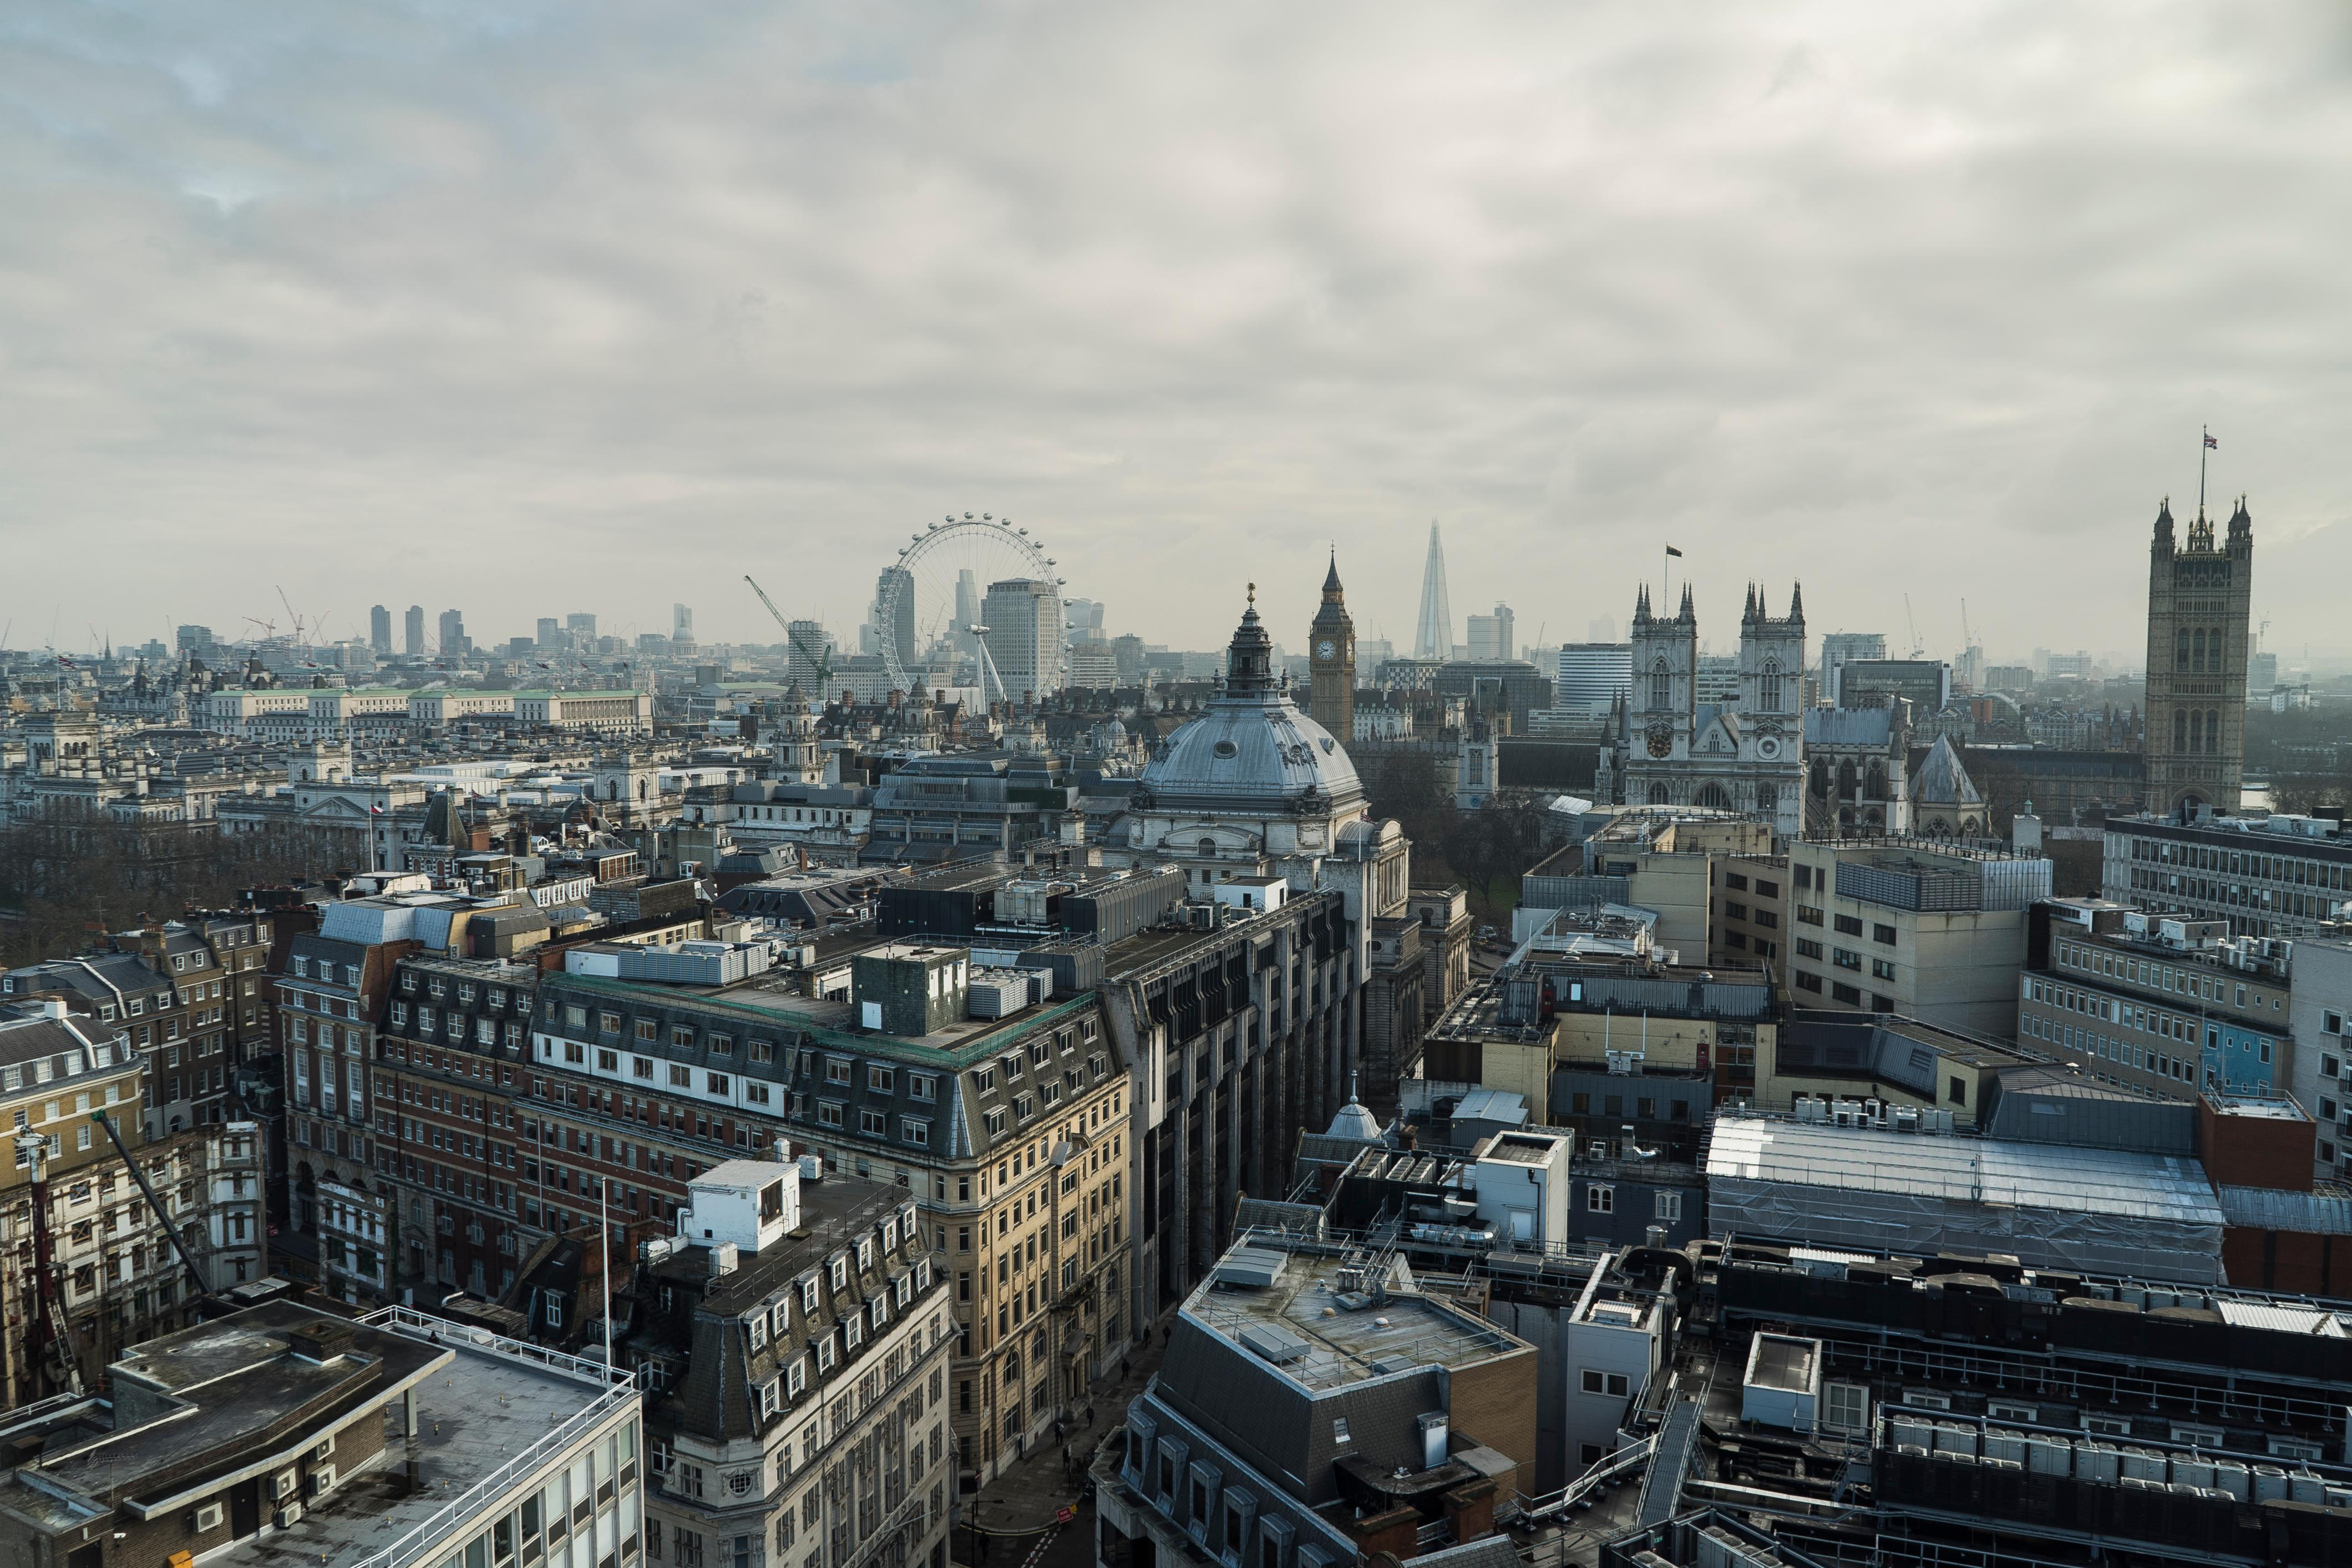 The view from the top of 55 Broadway, TfL's headquarters